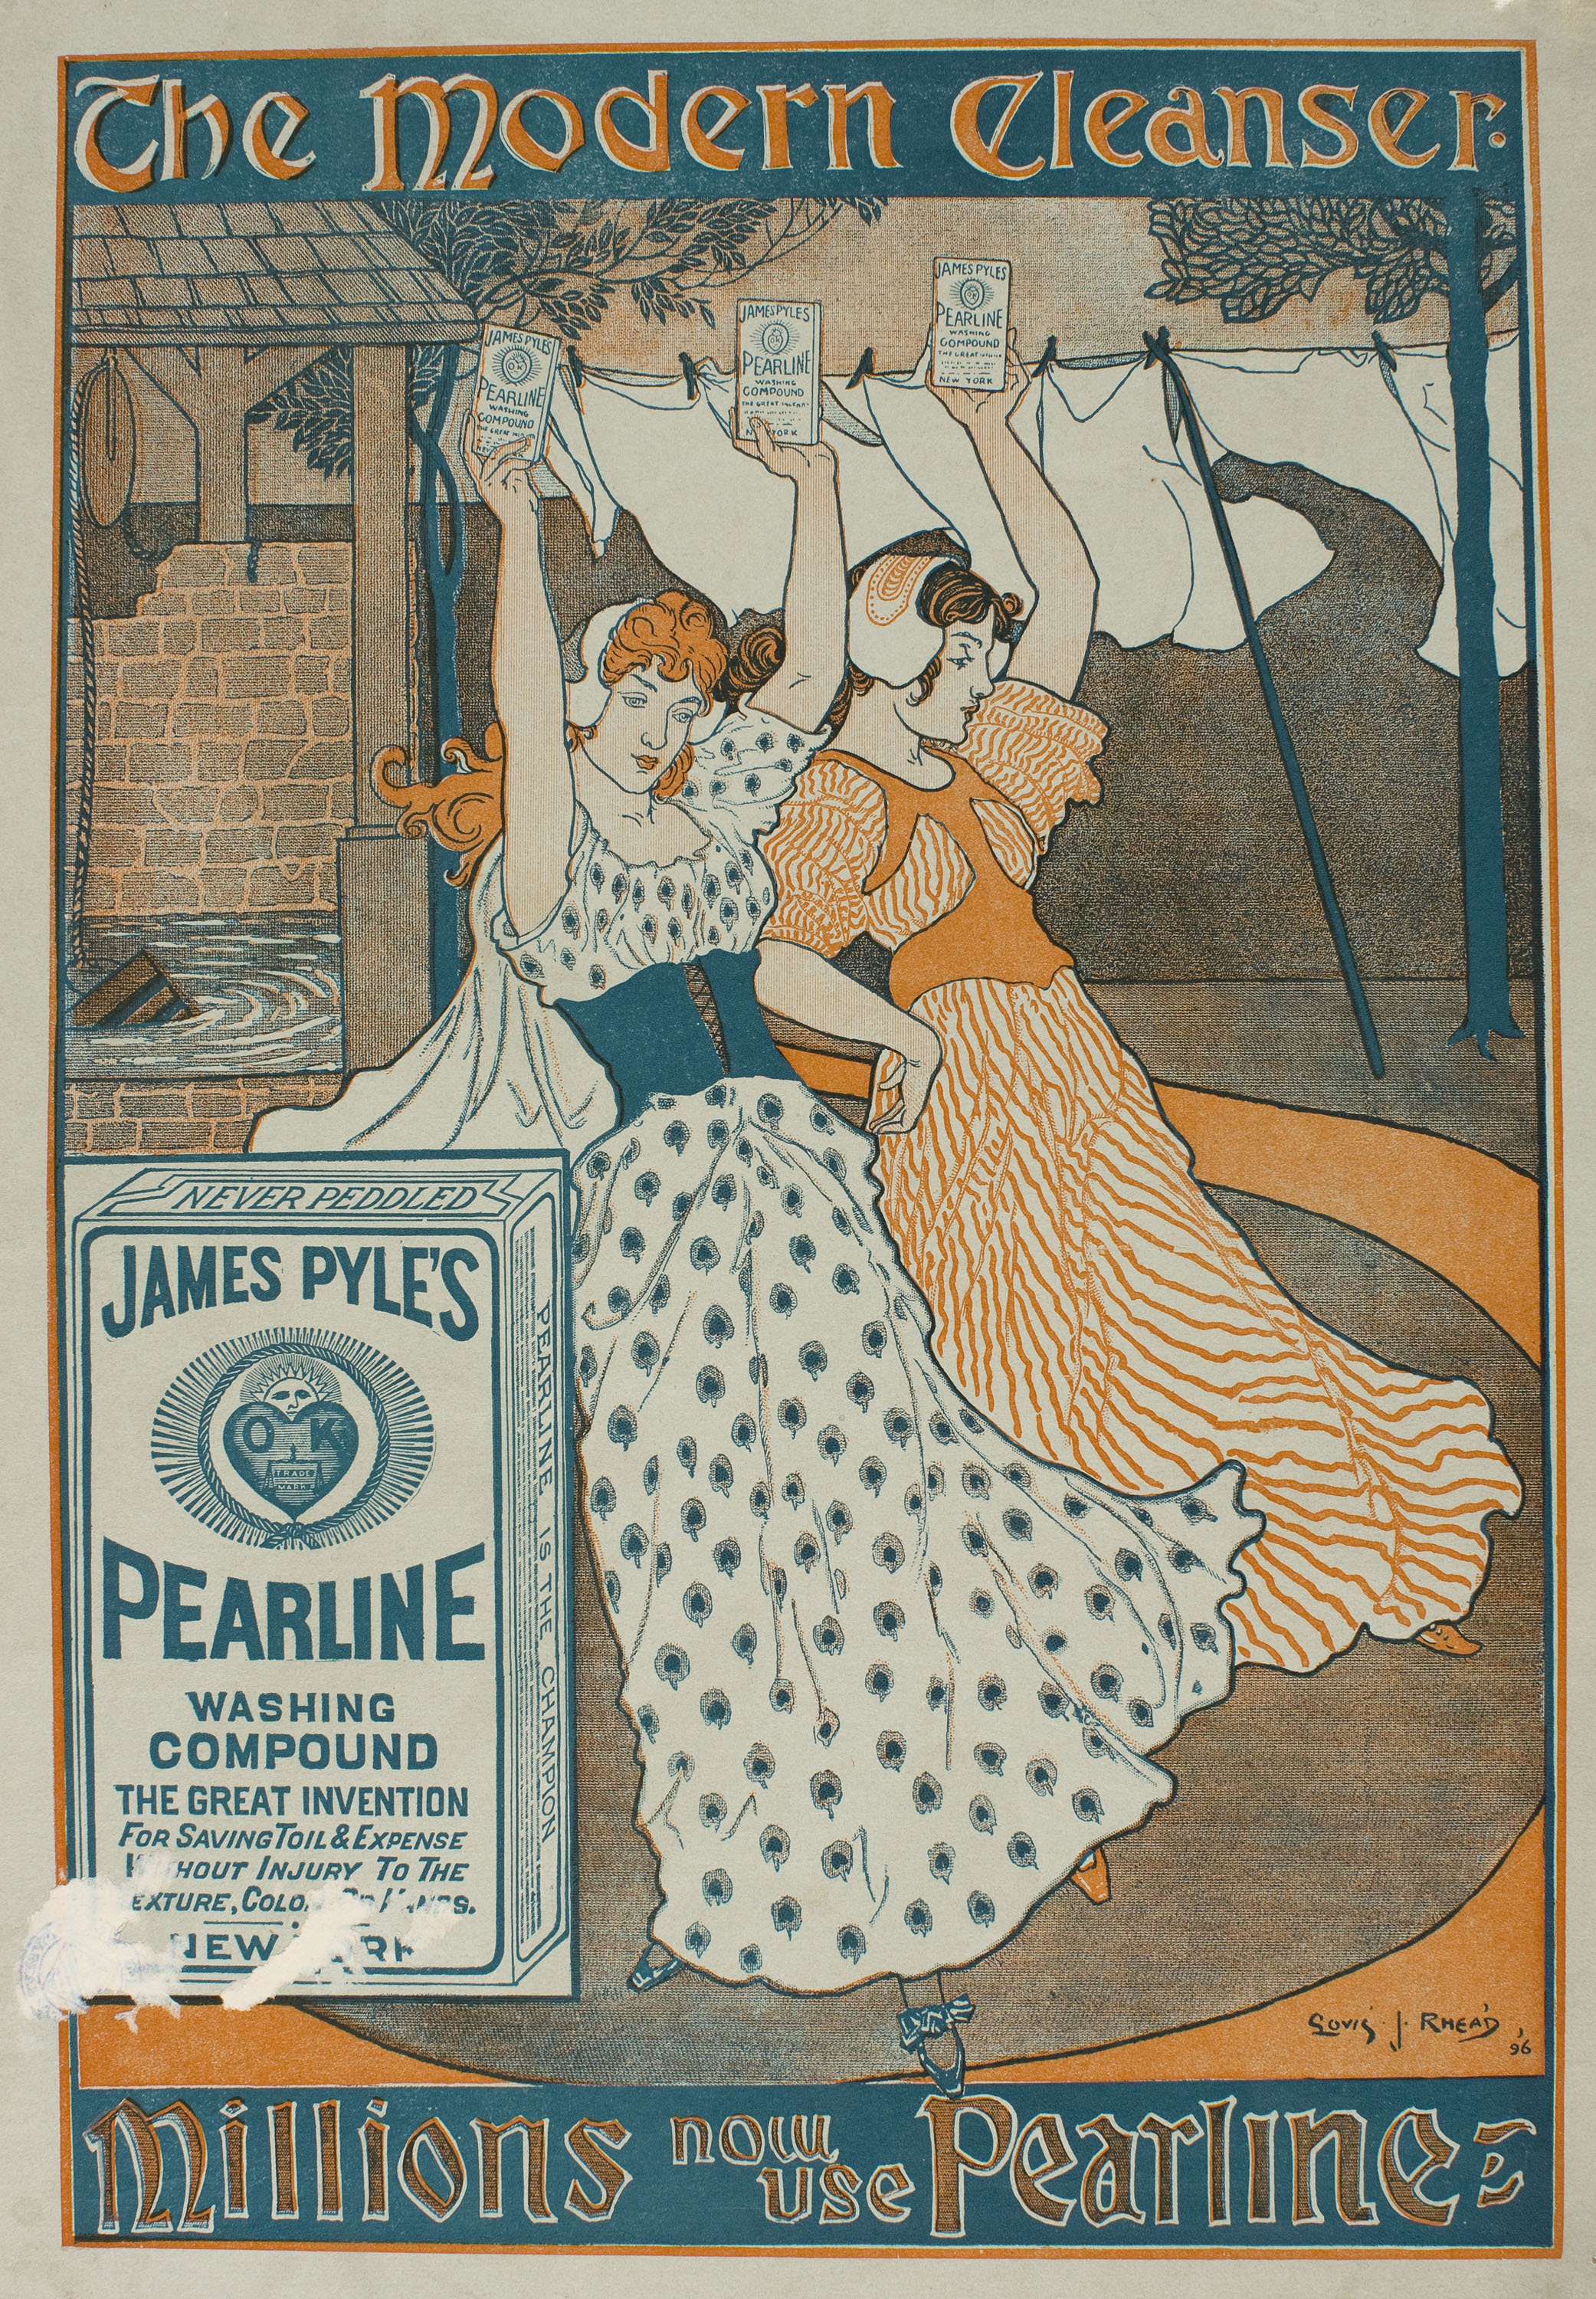 Louis John Rhead - James Pyle's Pearline - 1896